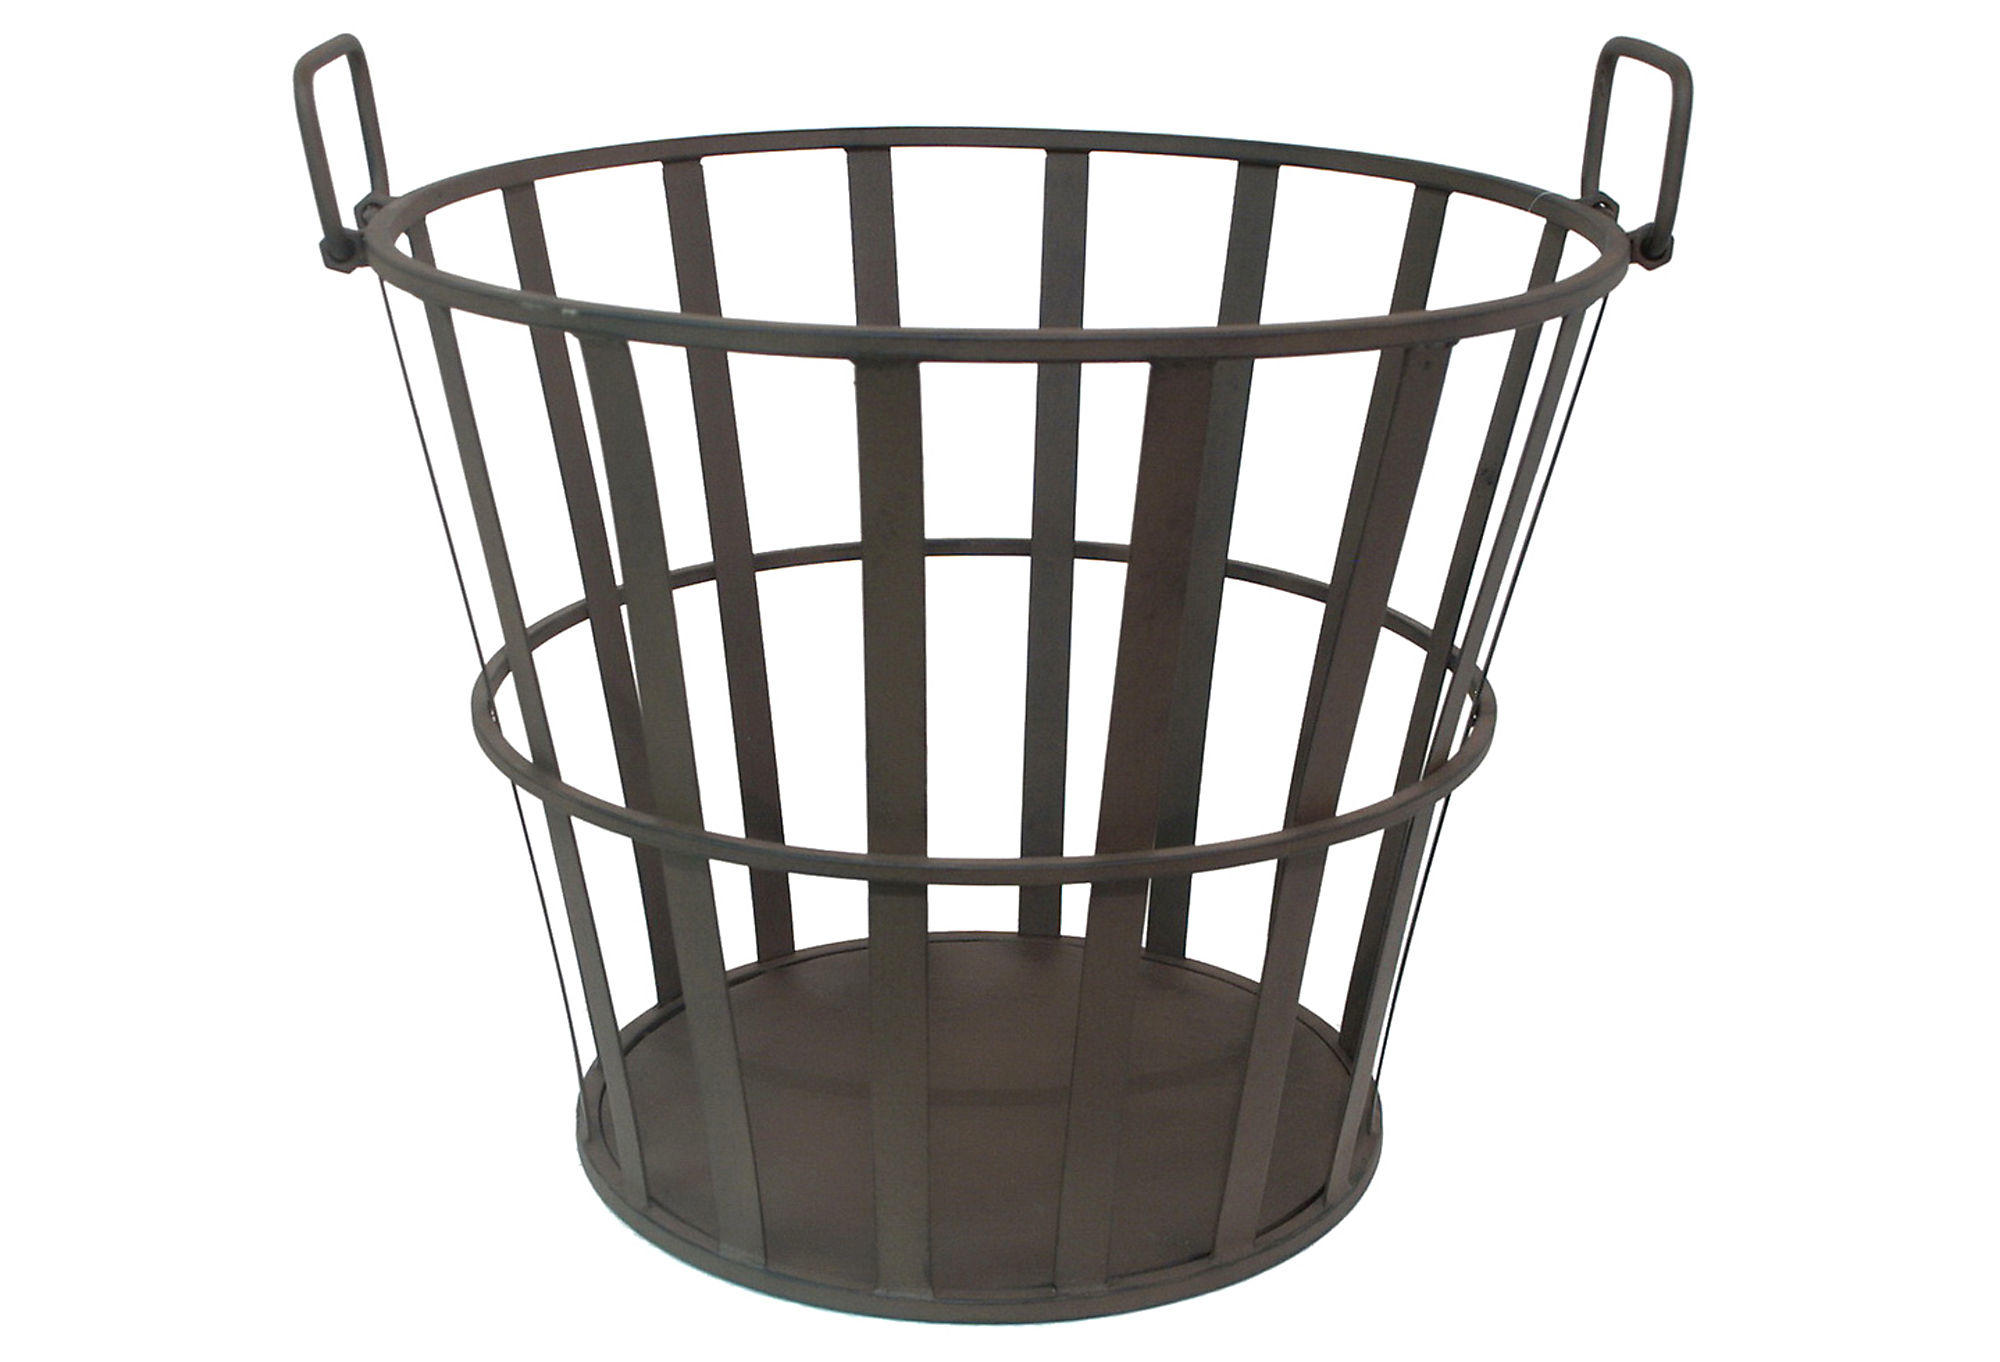 Fancy Baskets 16 Quot Metal Basket Black Decorative Bins From One Kings Lane